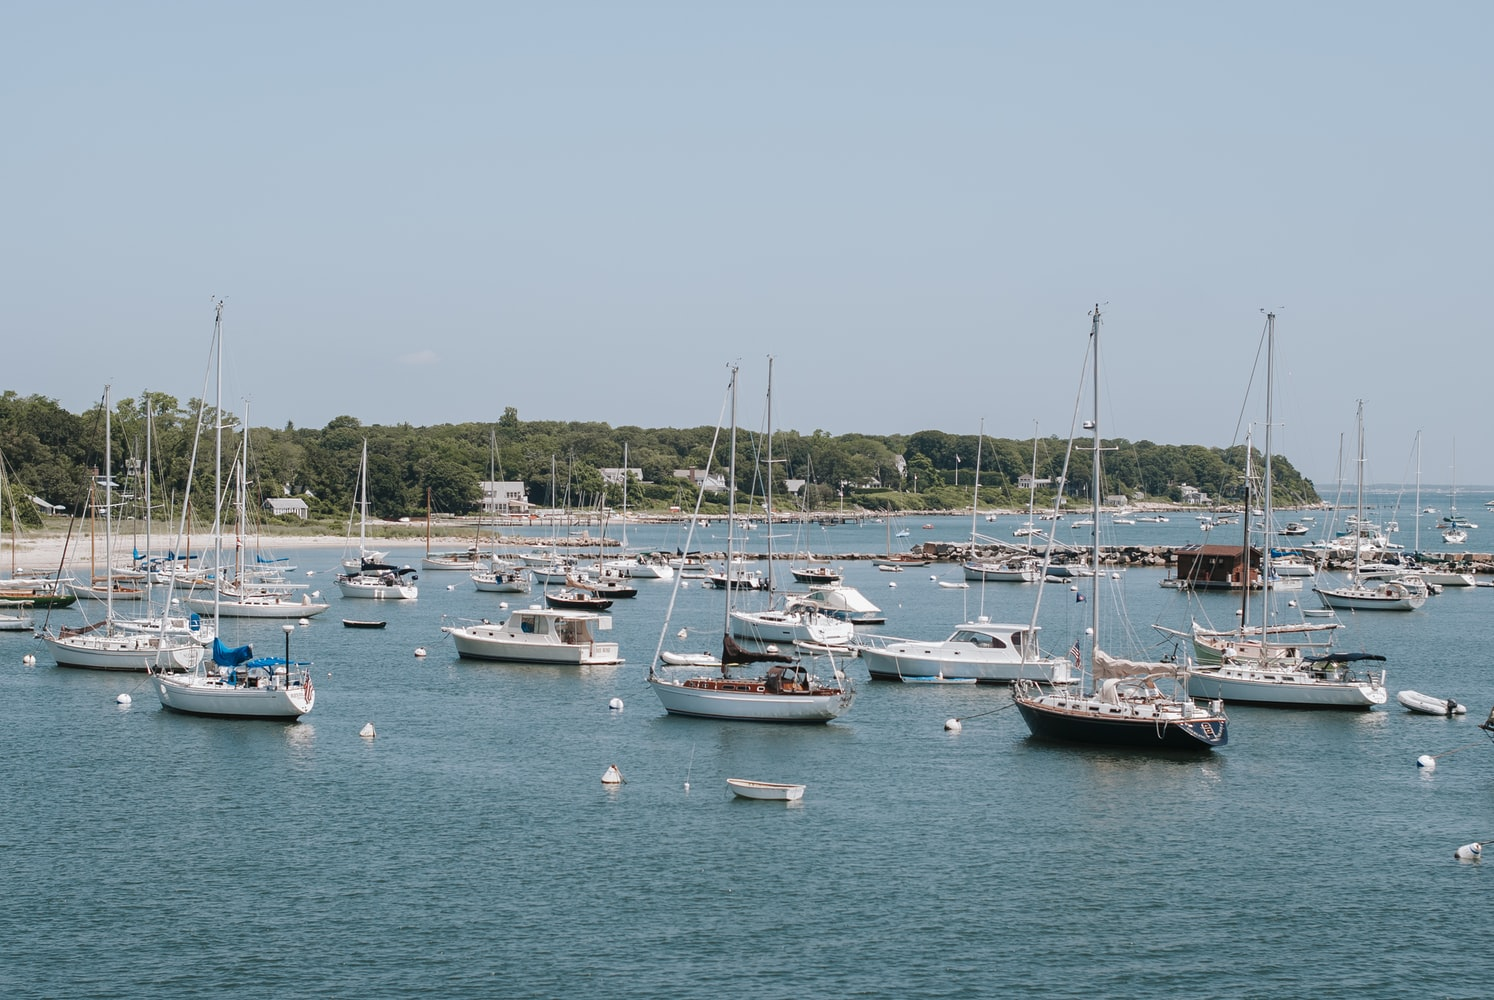 As an island, Martha's Vineyard has a diverse variety of living harbors and today we're talking about three of our favorites: Edgartown, Menemsha, and Oak Bluffs Harbor.